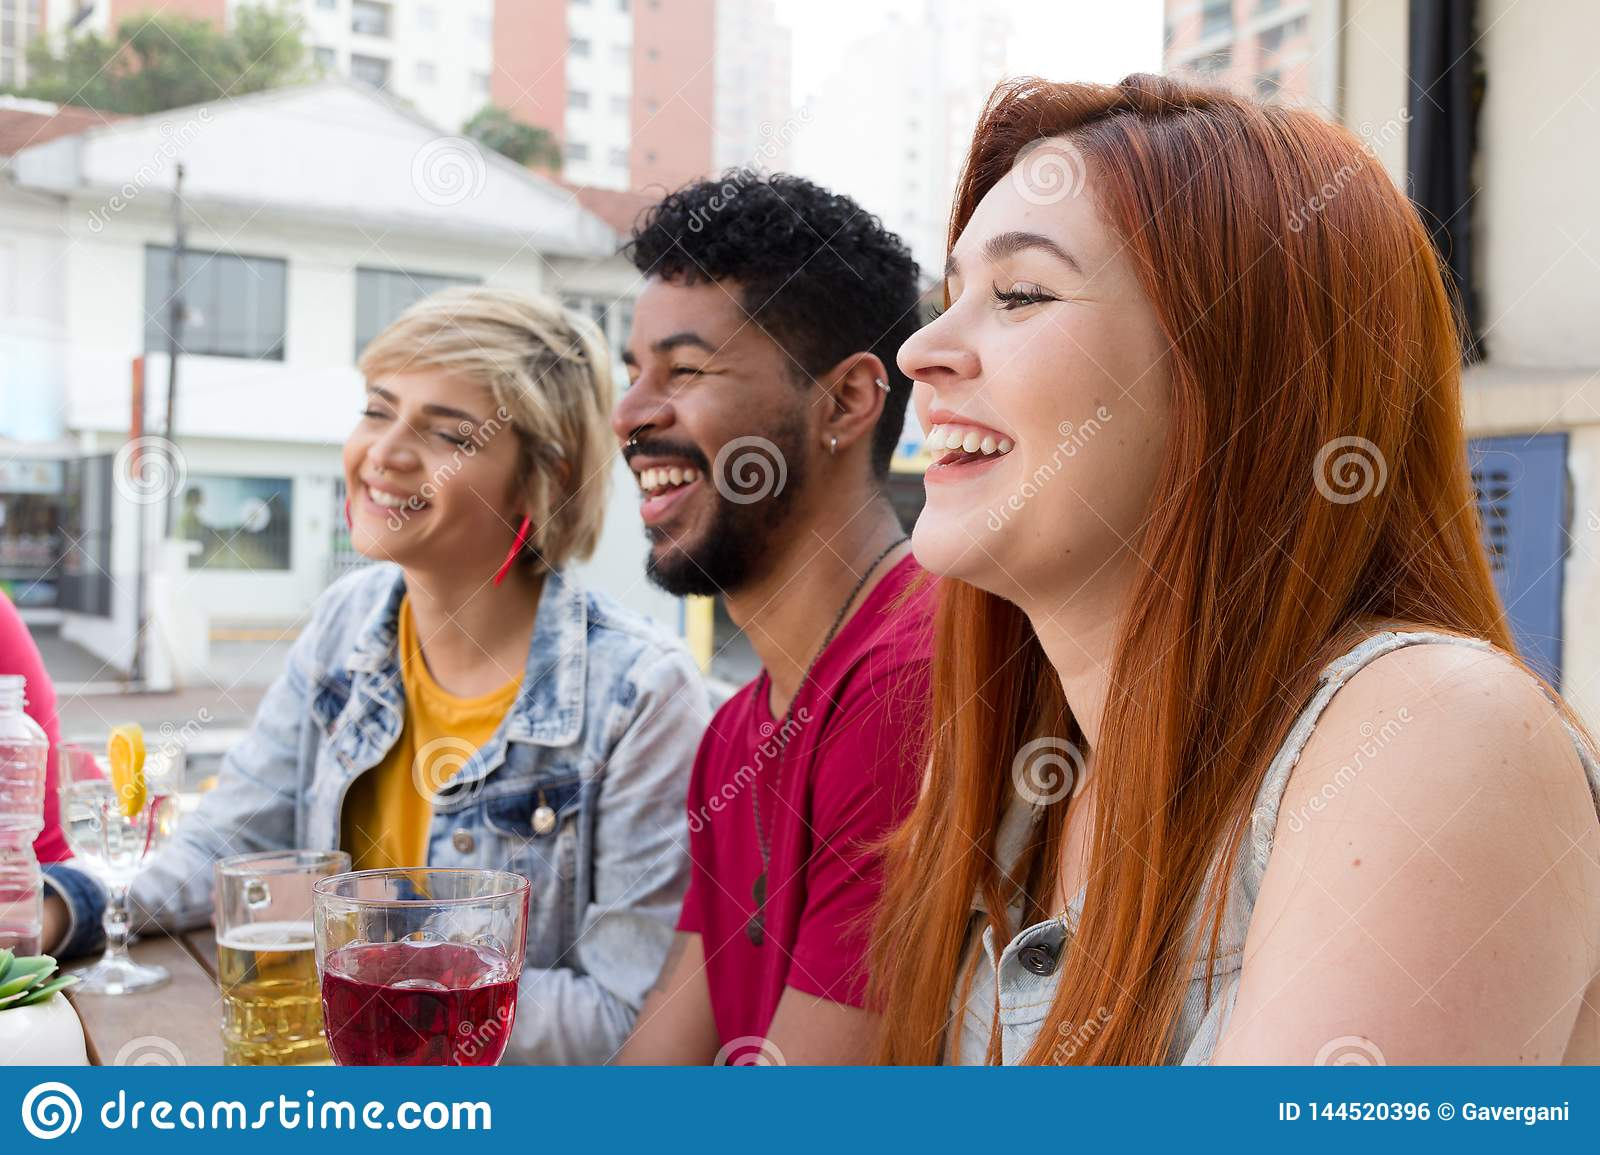 Cheerful young friends cheering and drinking together at cafe bar outdoor. Spring, warm, togetherness, lifestyle, diversity